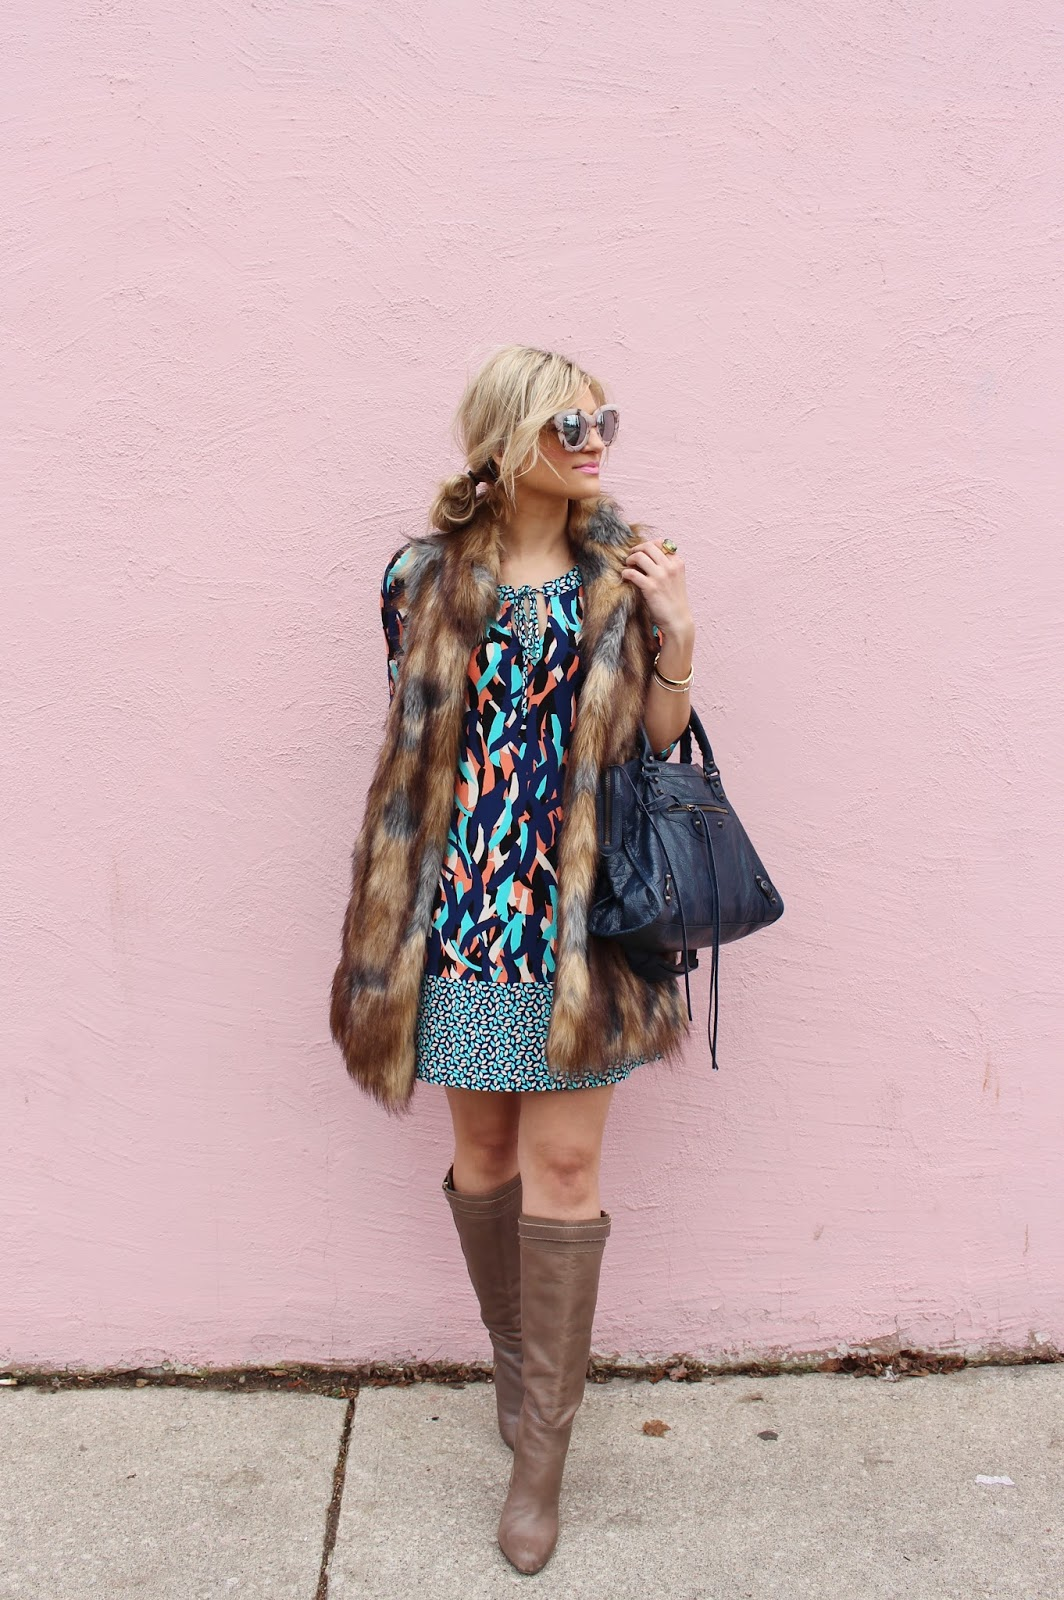 Bijuleni - How to Style a Summer Dress in Winter- Leota dress, Ann Taylor boots, fur vest and Balenciaga Bag